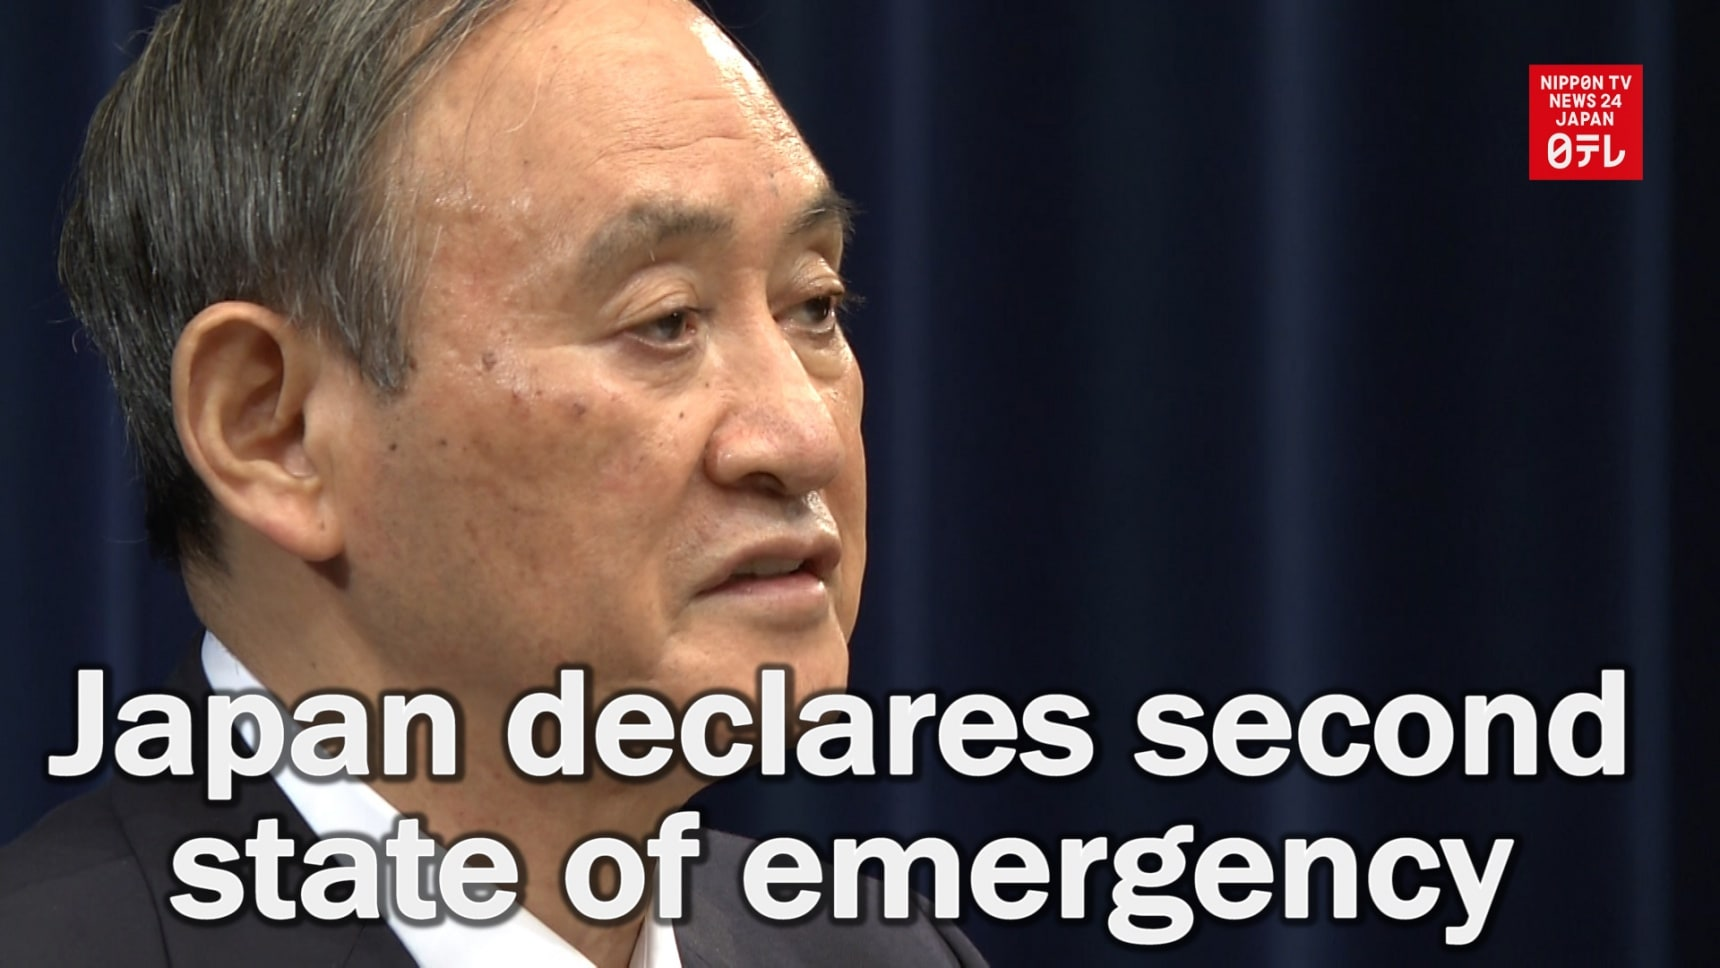 Japan Declares Second State of Emergency